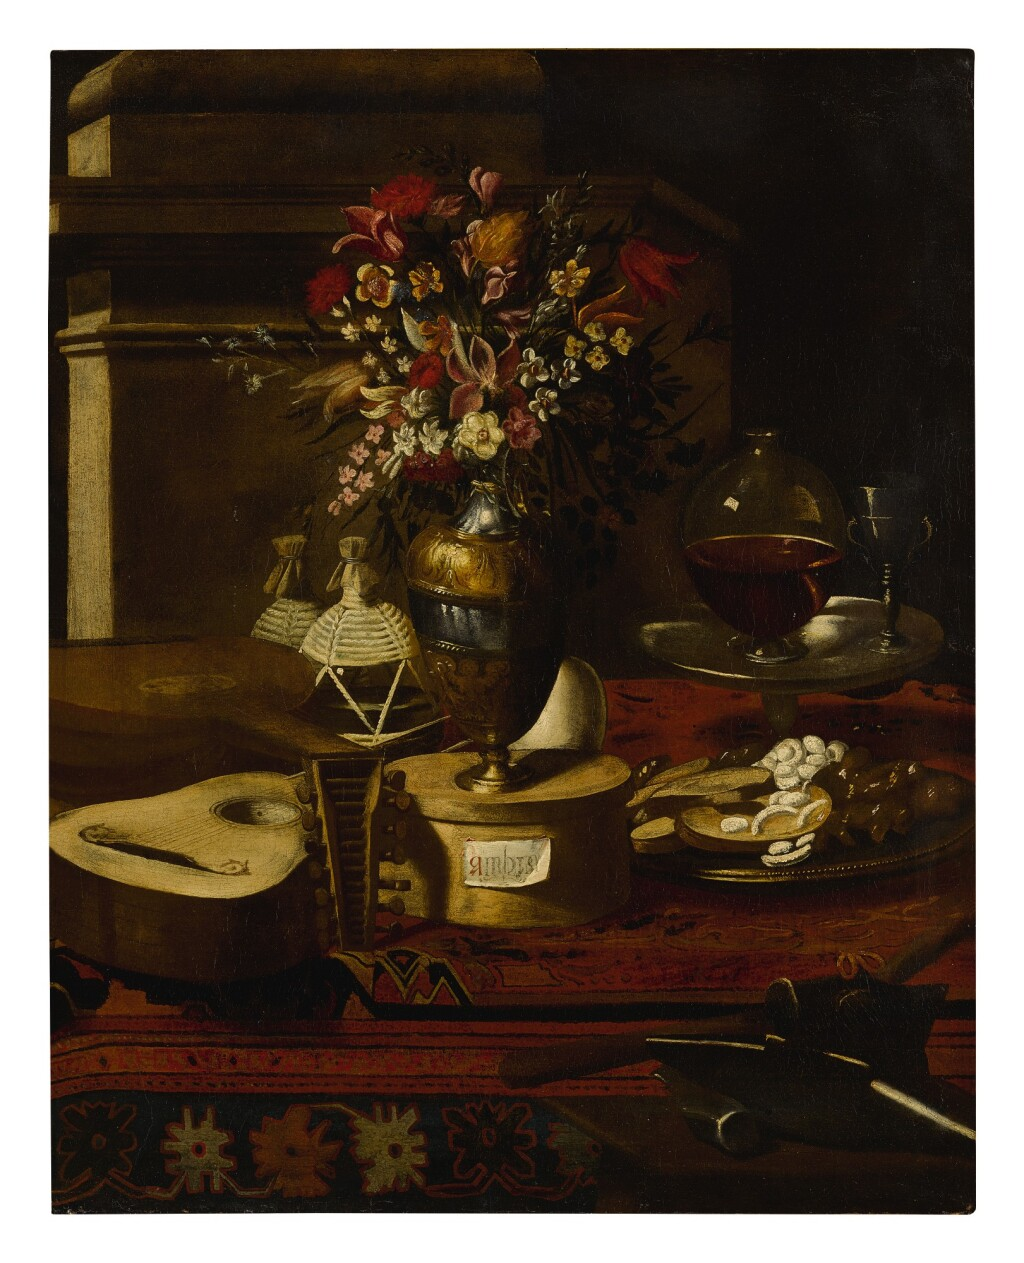 ATTRIBUTED TO PIER FRANCESCO CITTADINI   STILL LIFE OF A VASE OF FLOWERS, MUSICAL INSTRUMENTS, TWO FLASKS, A DISH WITH SWEETS AND OTHER OBJECTS ON A TABLE